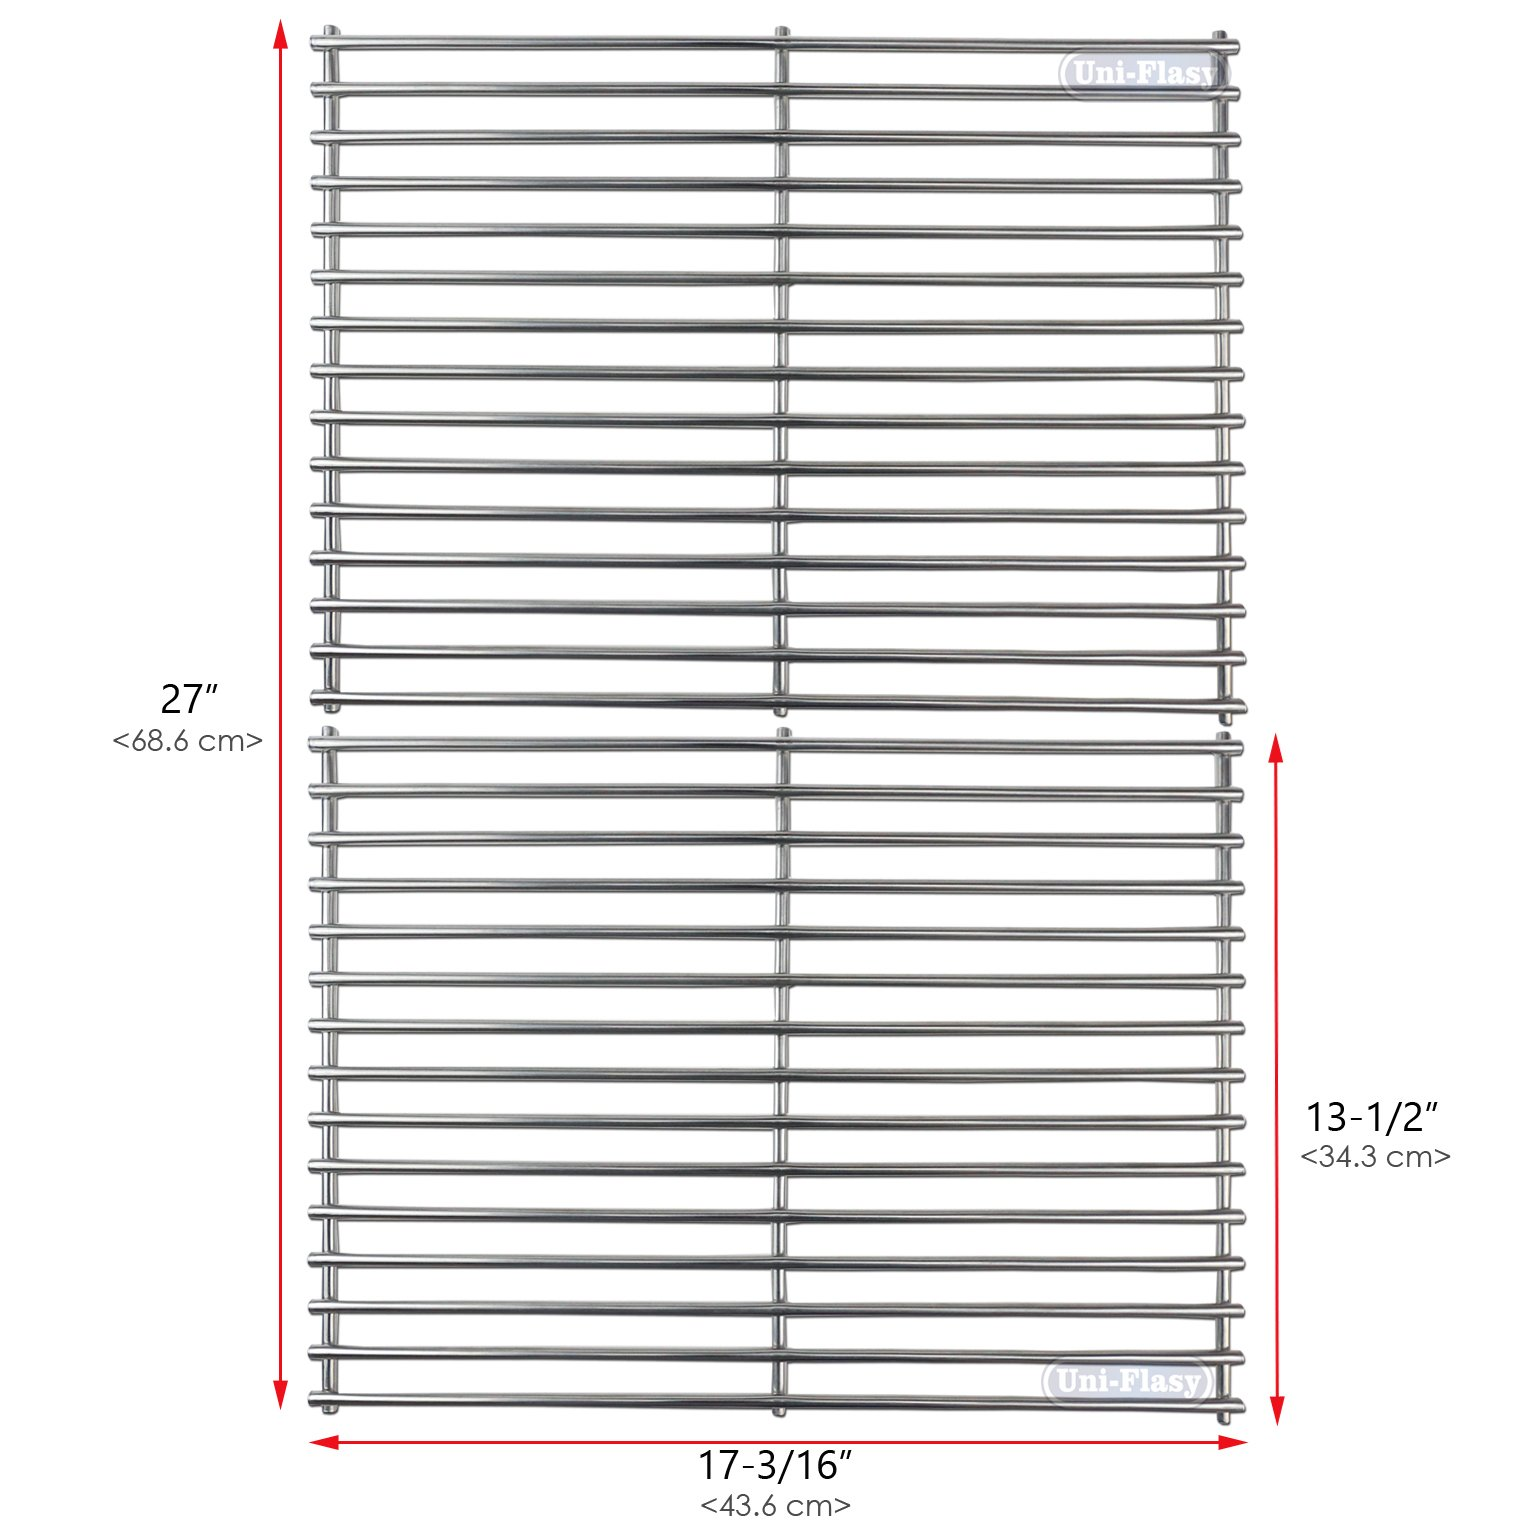 Uniflasy Stainless Steel Grill Cooking Grid Grates Replacement Parts for BHG BG1755B, Grillmaster 720-0697, Nexgrill 720-0697, Brinkmann 810-9490, Uniflame GBC981W and GBC940WIR Gas Grills